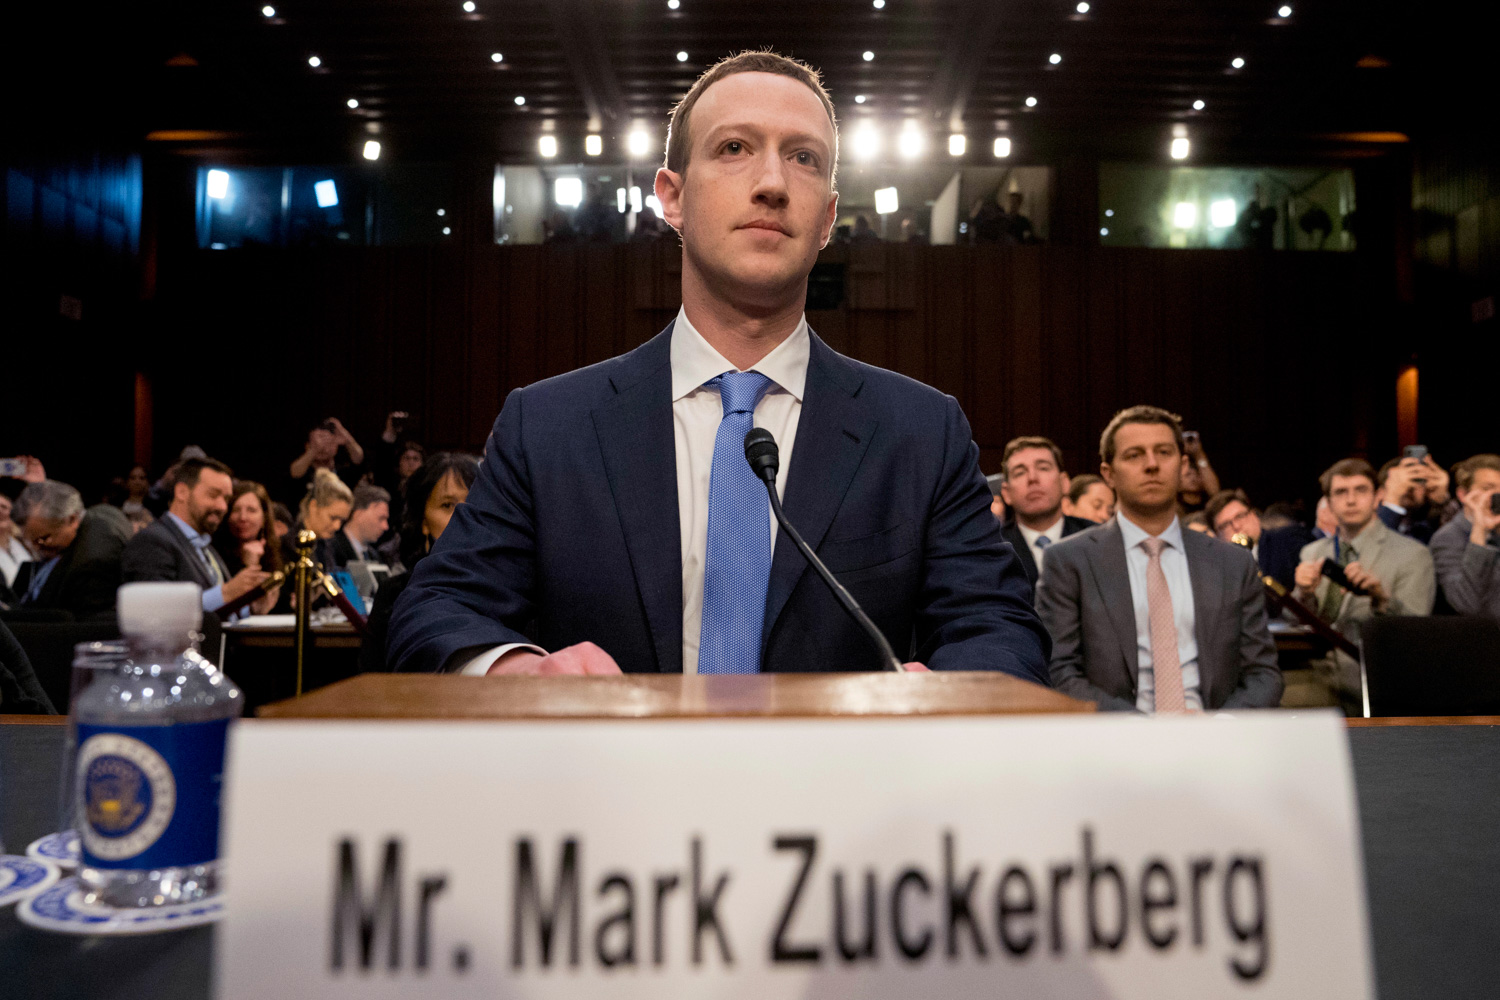 <div class='meta'><div class='origin-logo' data-origin='none'></div><span class='caption-text' data-credit='Andrew Harnik/AP Photo'>Facebook CEO Mark Zuckerberg arrives to testify before a joint hearing of the Commerce and Judiciary Committees on Capitol Hill in Washington.</span></div>